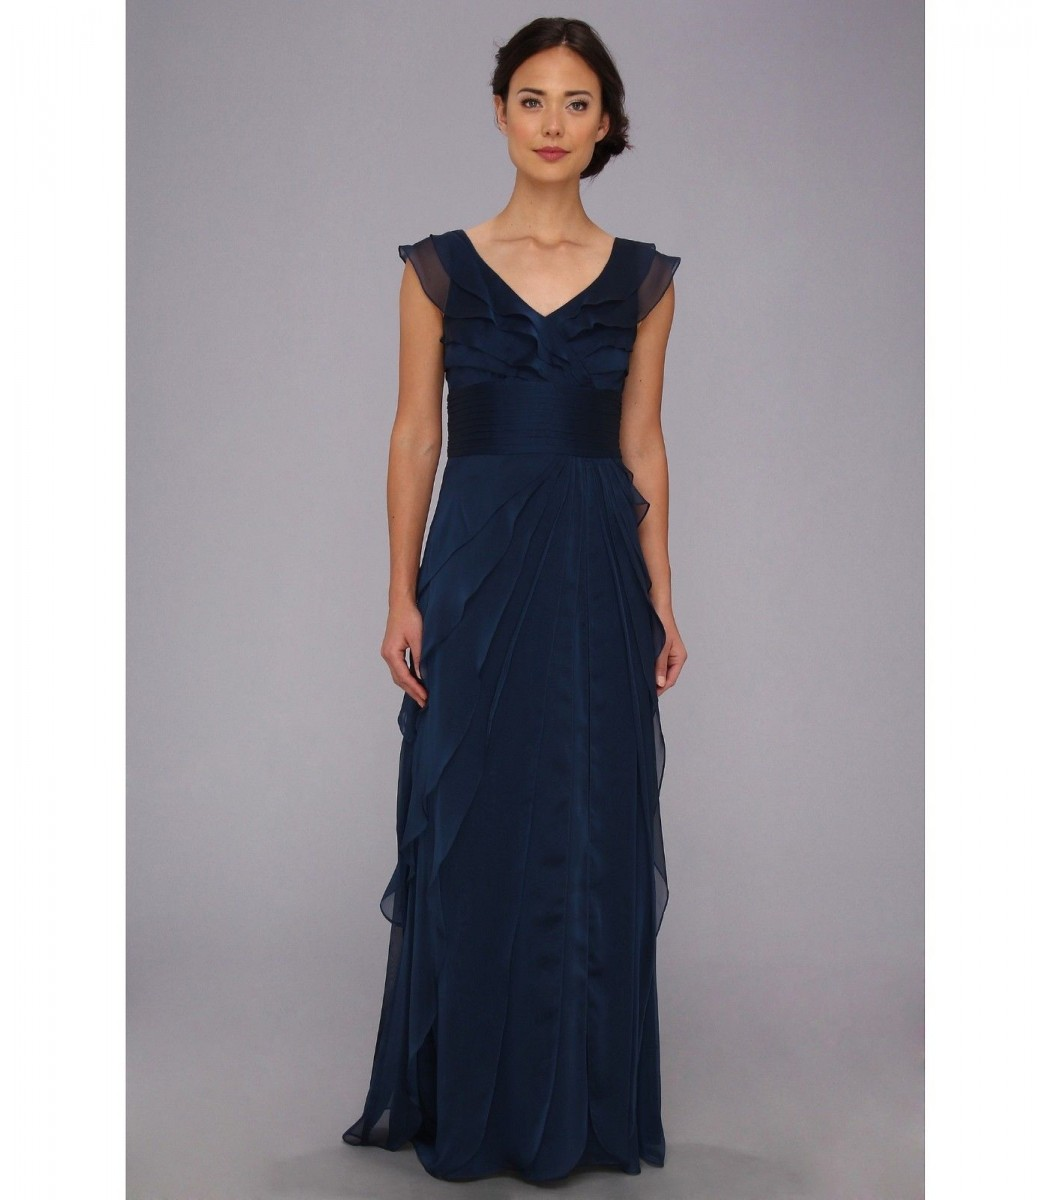 ADRIANNA PAPELL 081844460 Navy Blue Tiered Chiffon Gown Dress Size ...